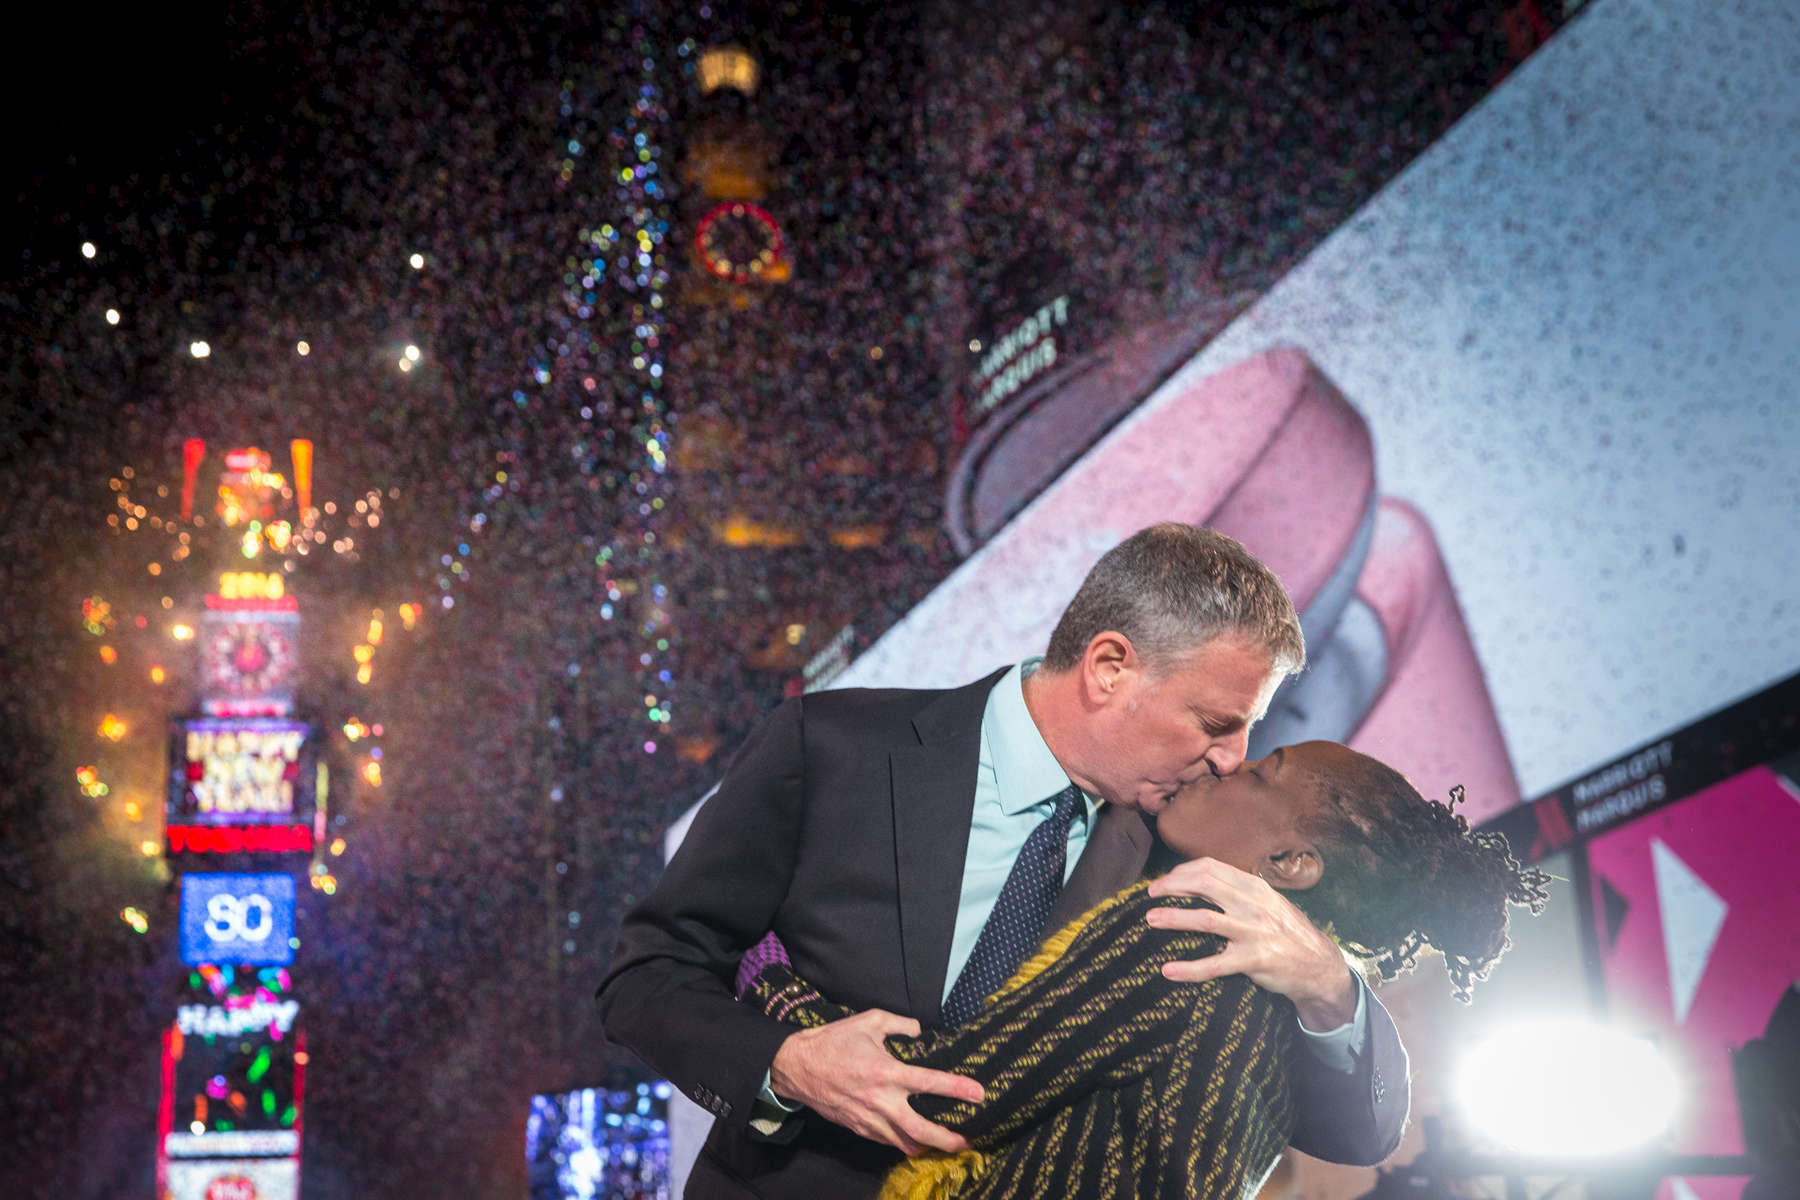 Mayor Bill de Blasio and First Lady Chirlane McCray ring in the New Year with a kiss during the New Year's Eve Ball Drop in Times Square on Friday January 1, 2016. Michael Appleton/Mayoral Photography Office